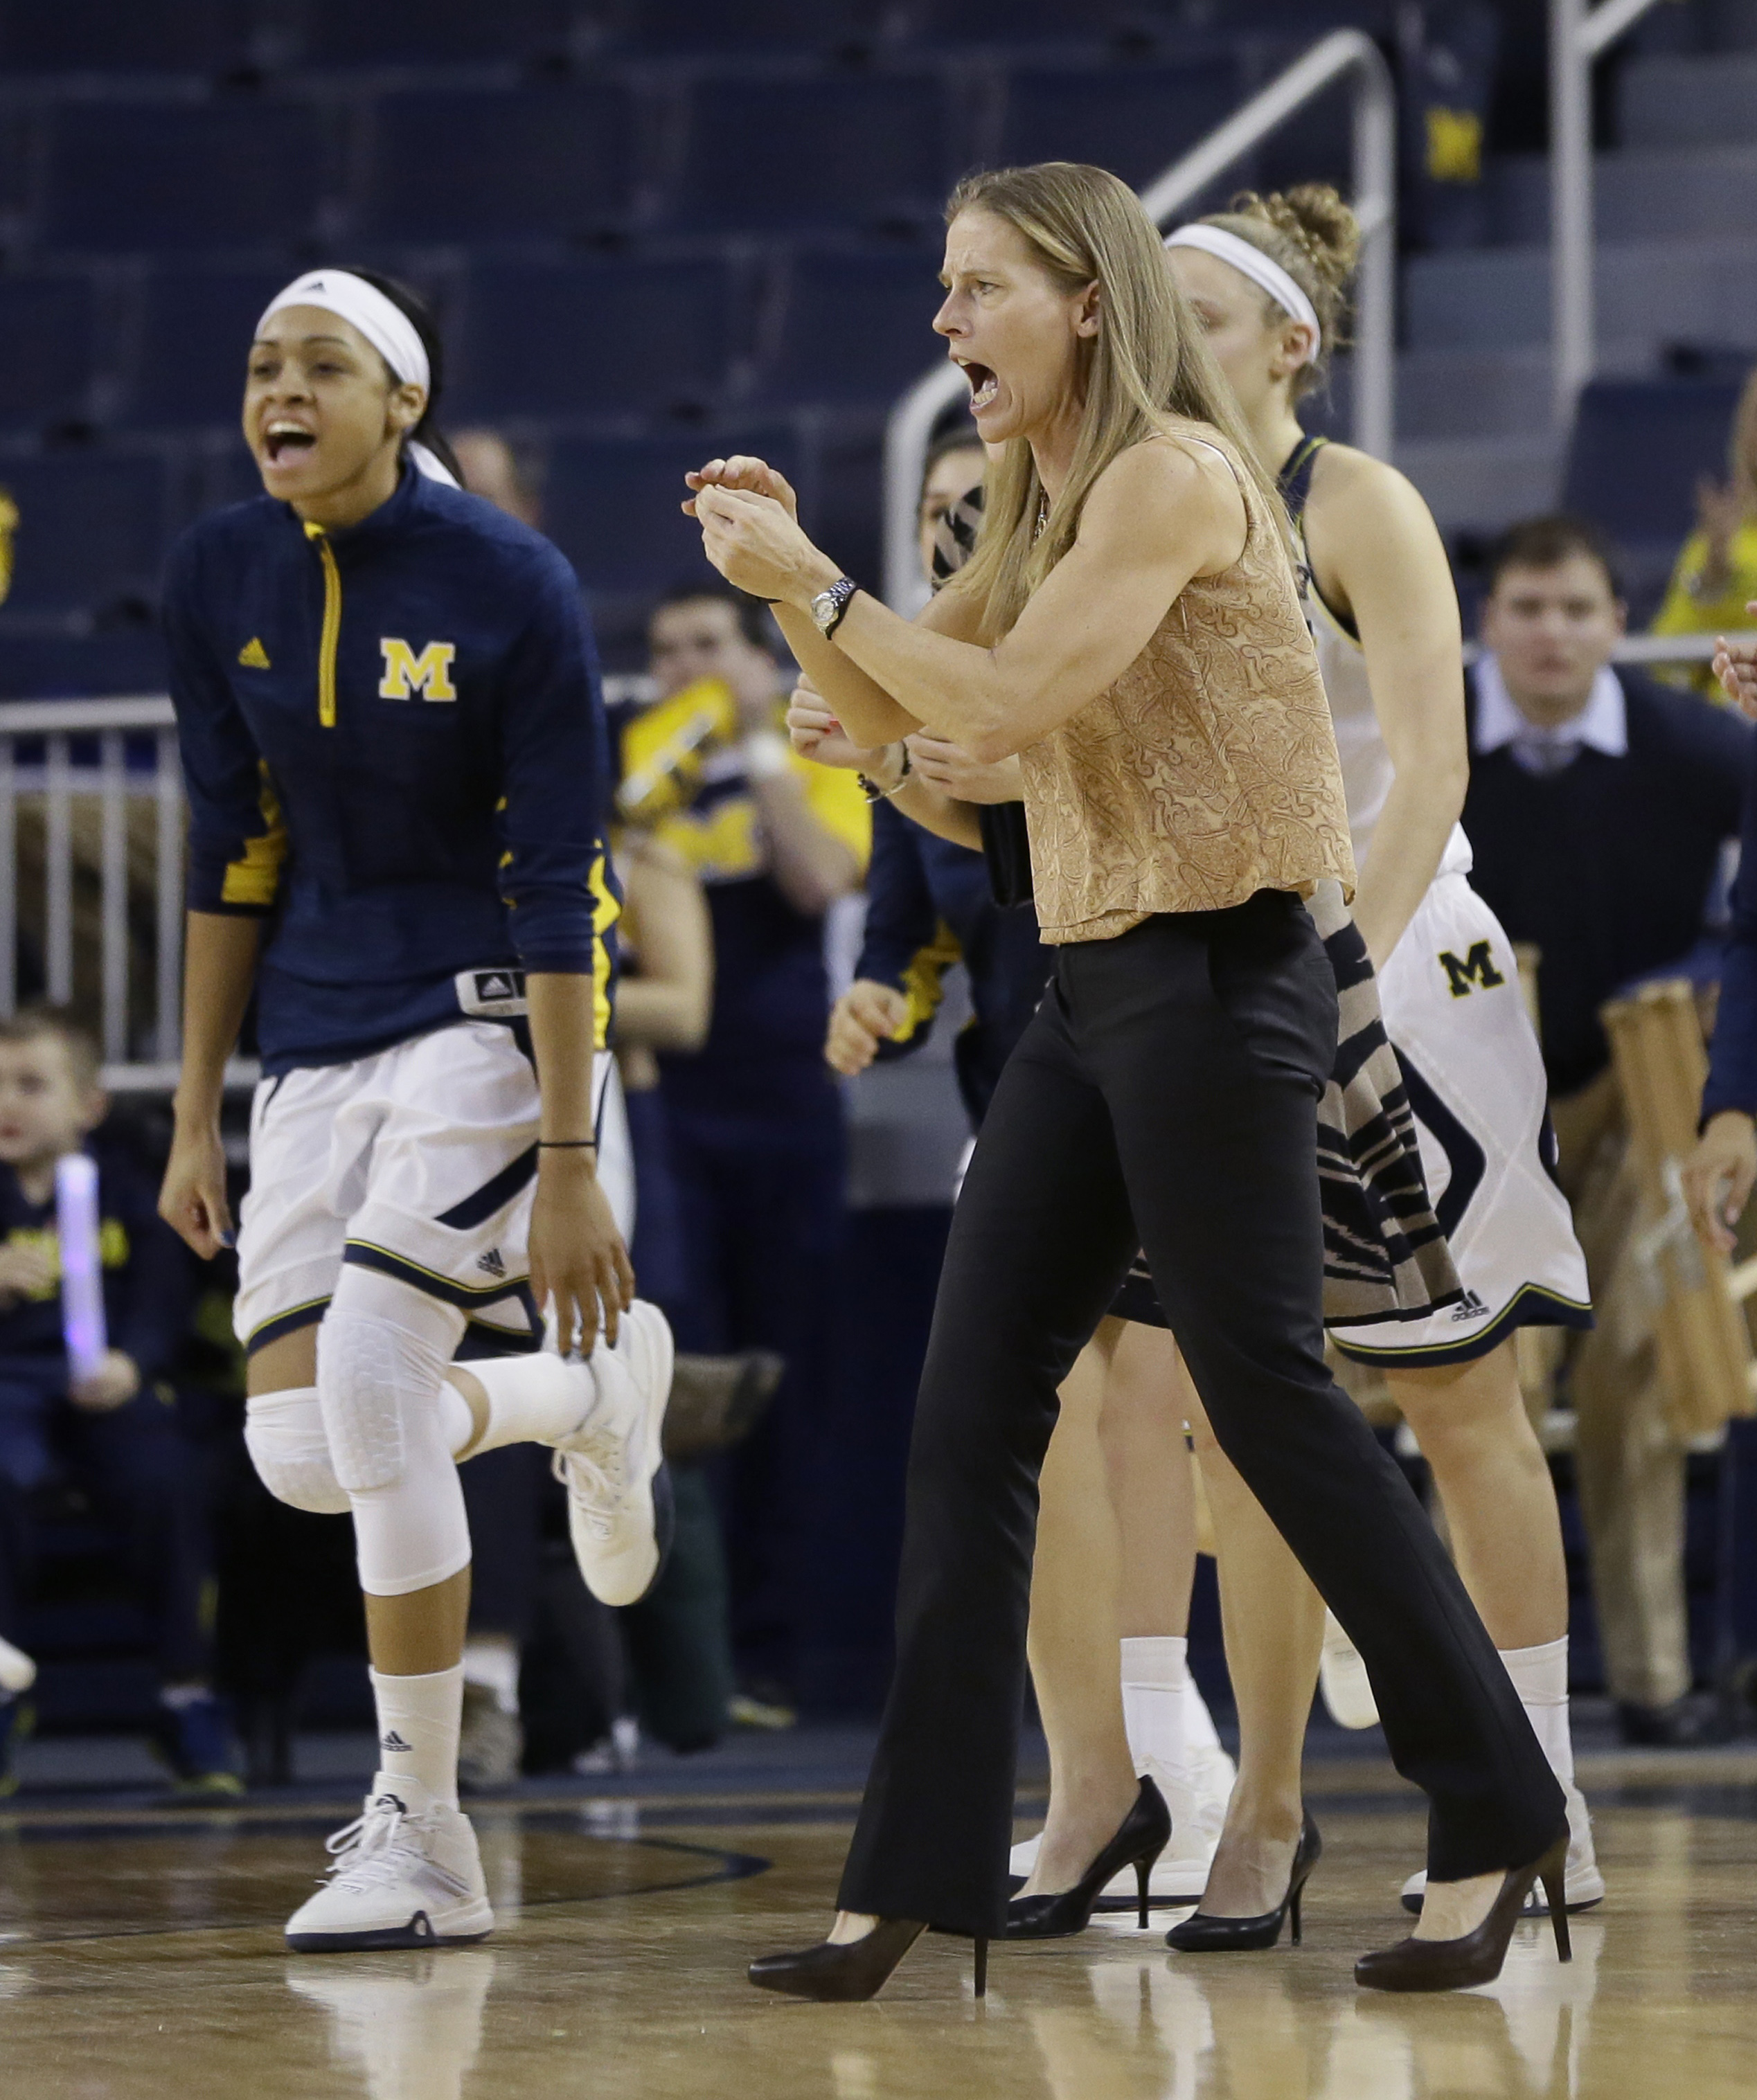 Michigan coach Kim Barnes Arico cheers during a timeout in the first half of the team's NCAA college basketball game against Maryland, Thursday, Jan. 14, 2016, in Ann Arbor, Mich. (AP Photo/Carlos Osorio)